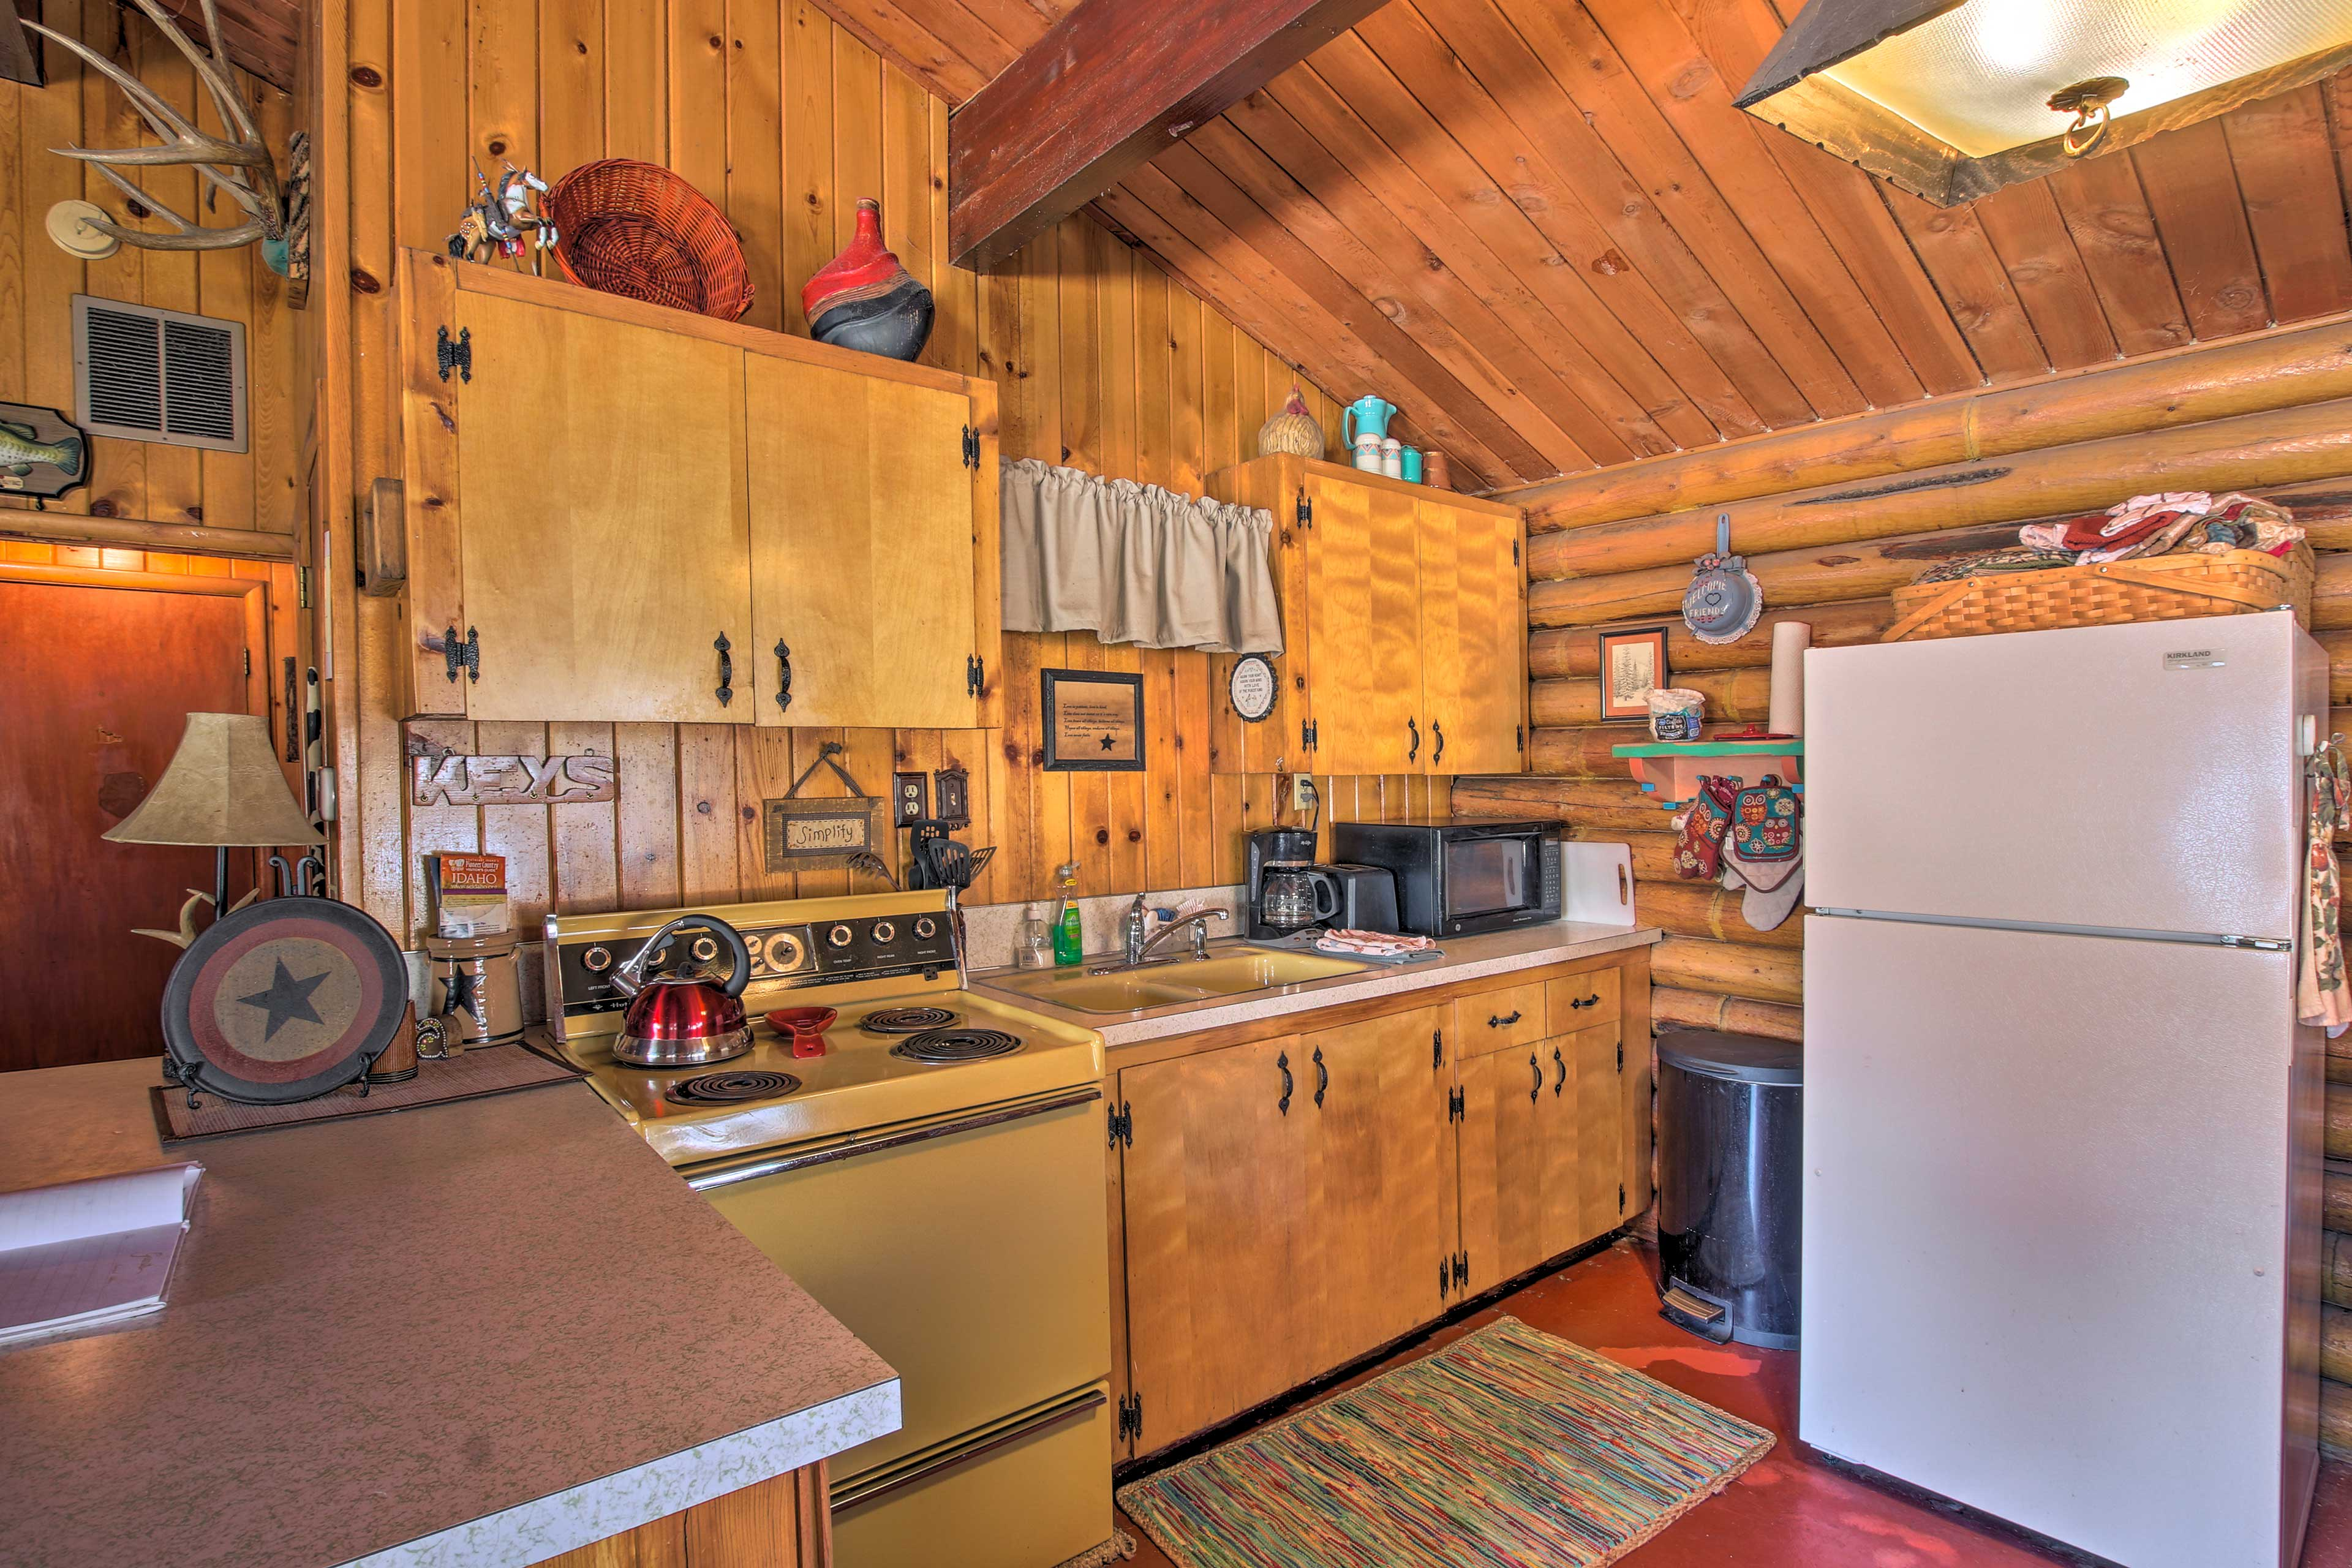 Prepare meals in the well-equipped kitchen.